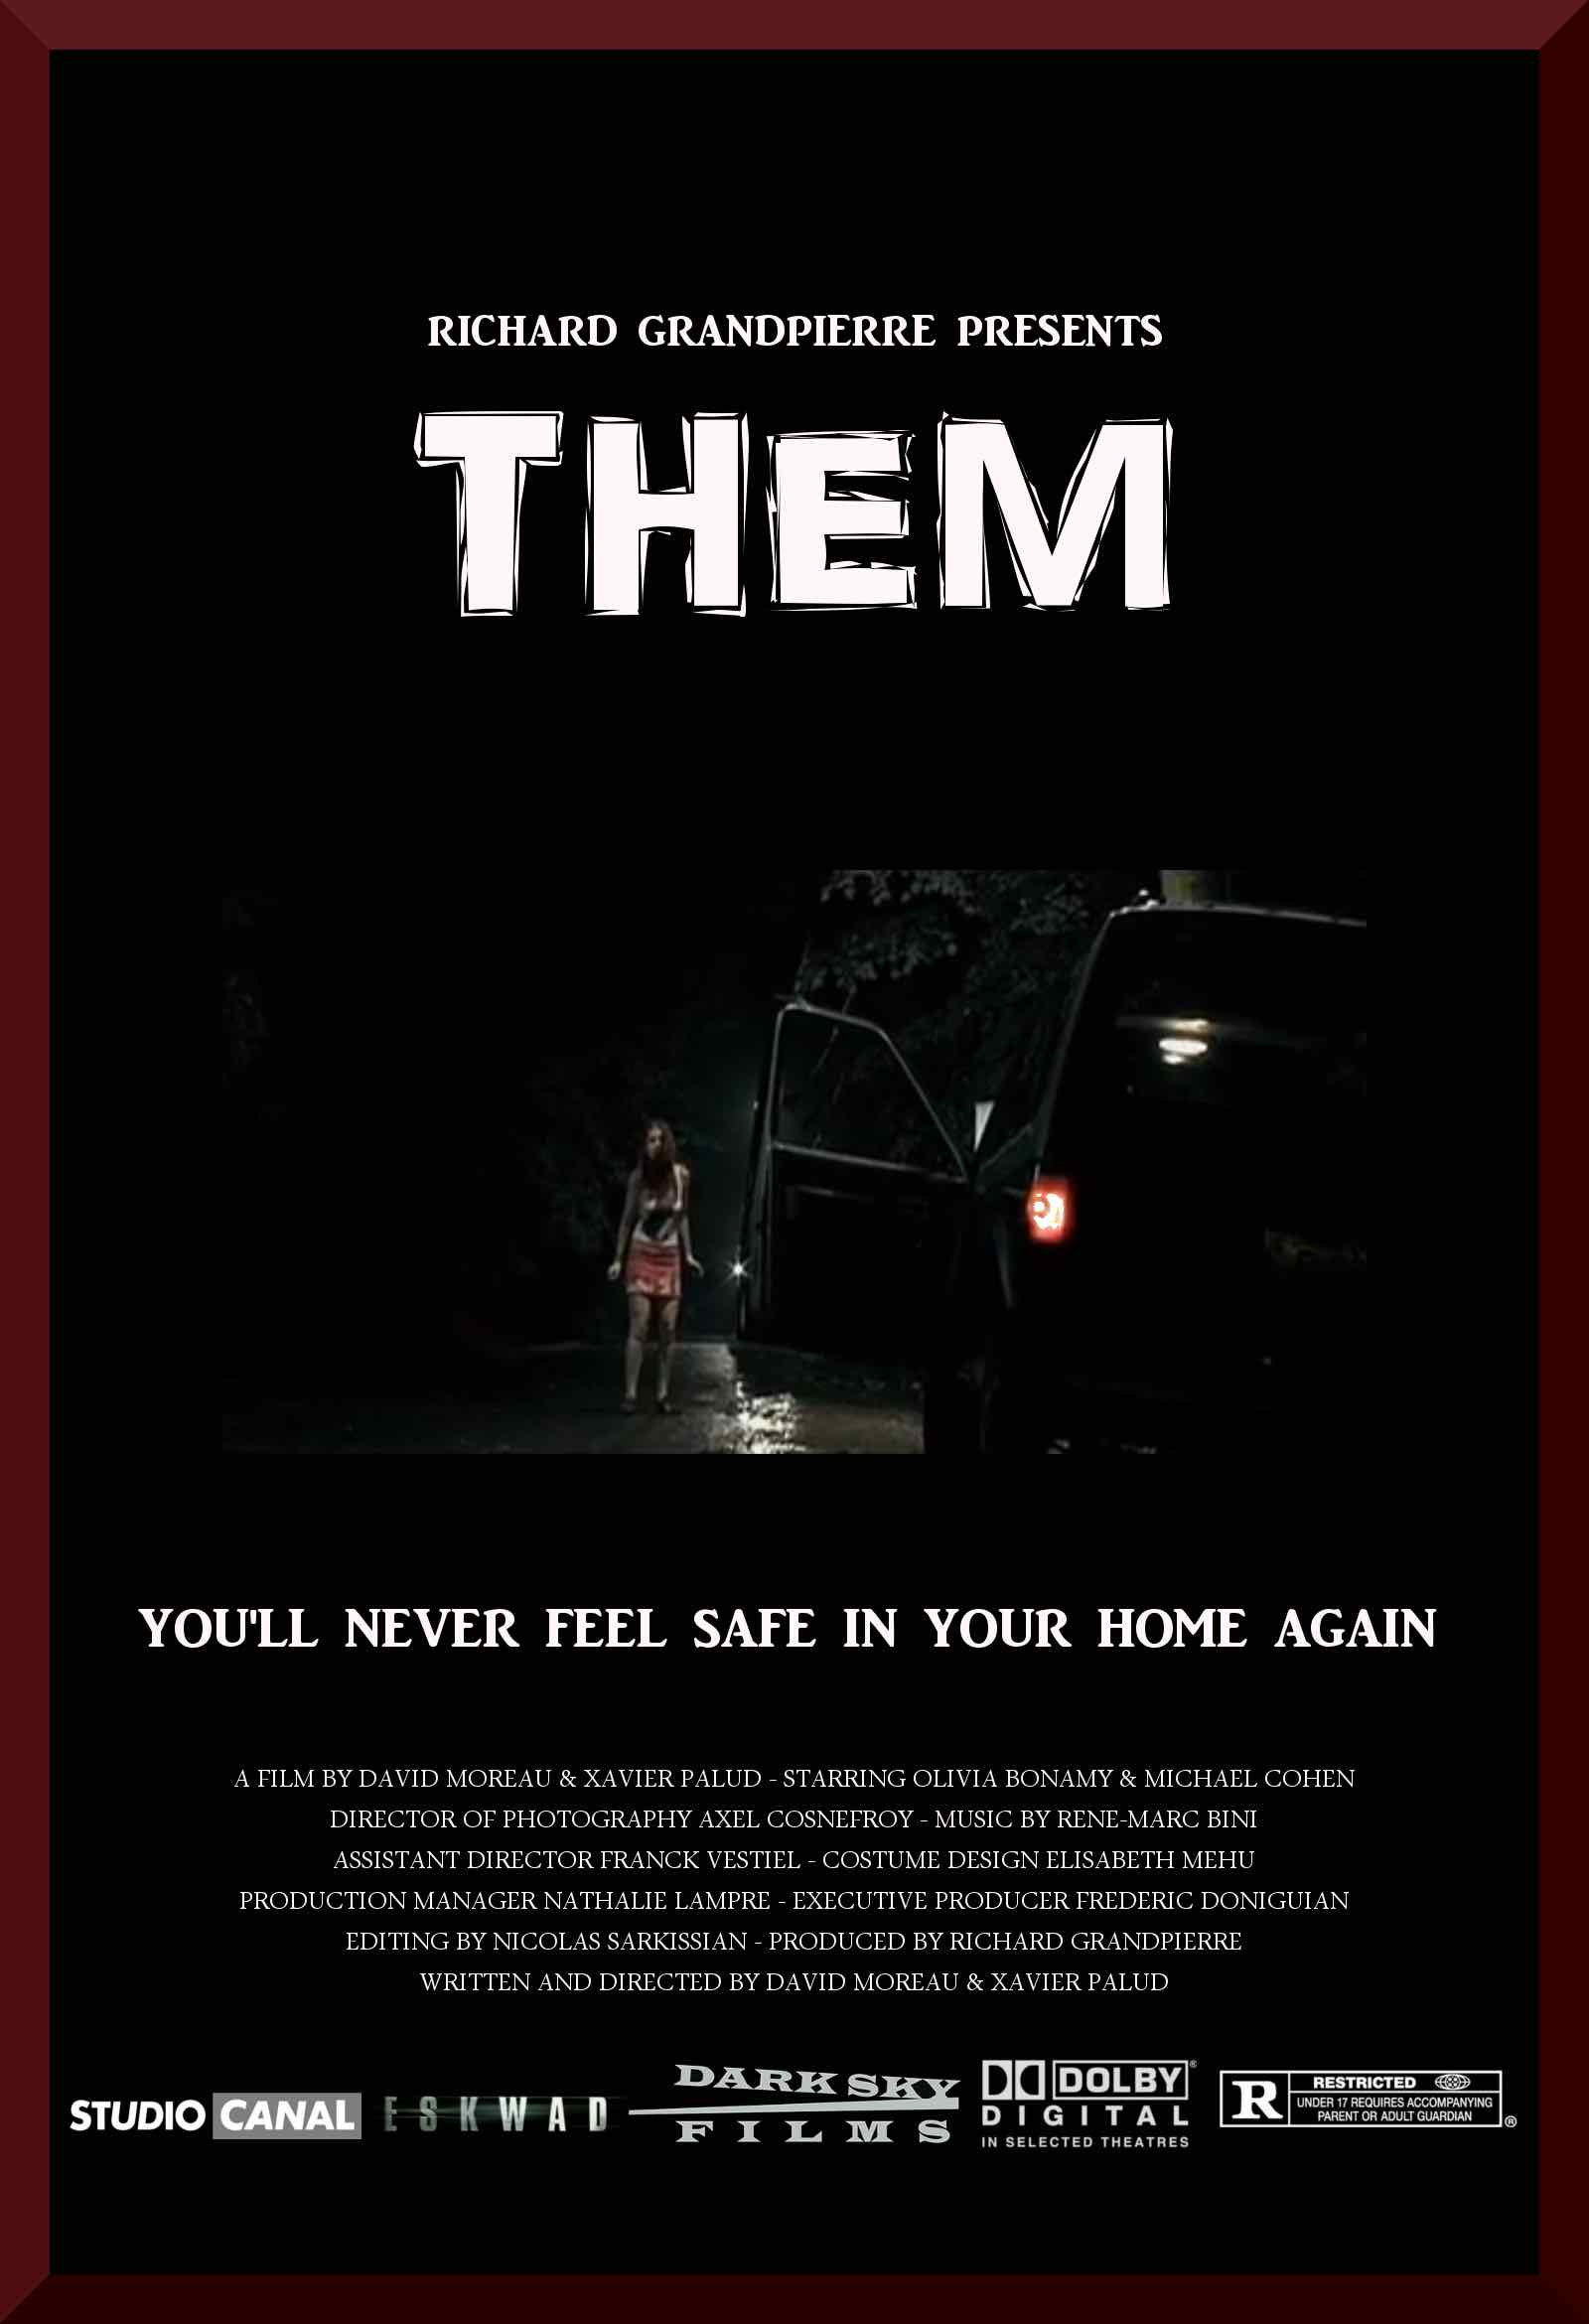 A break-in with an unwanted intruder can scare anyone senseless. So watching movies about break-in will defintely give you a good scare.